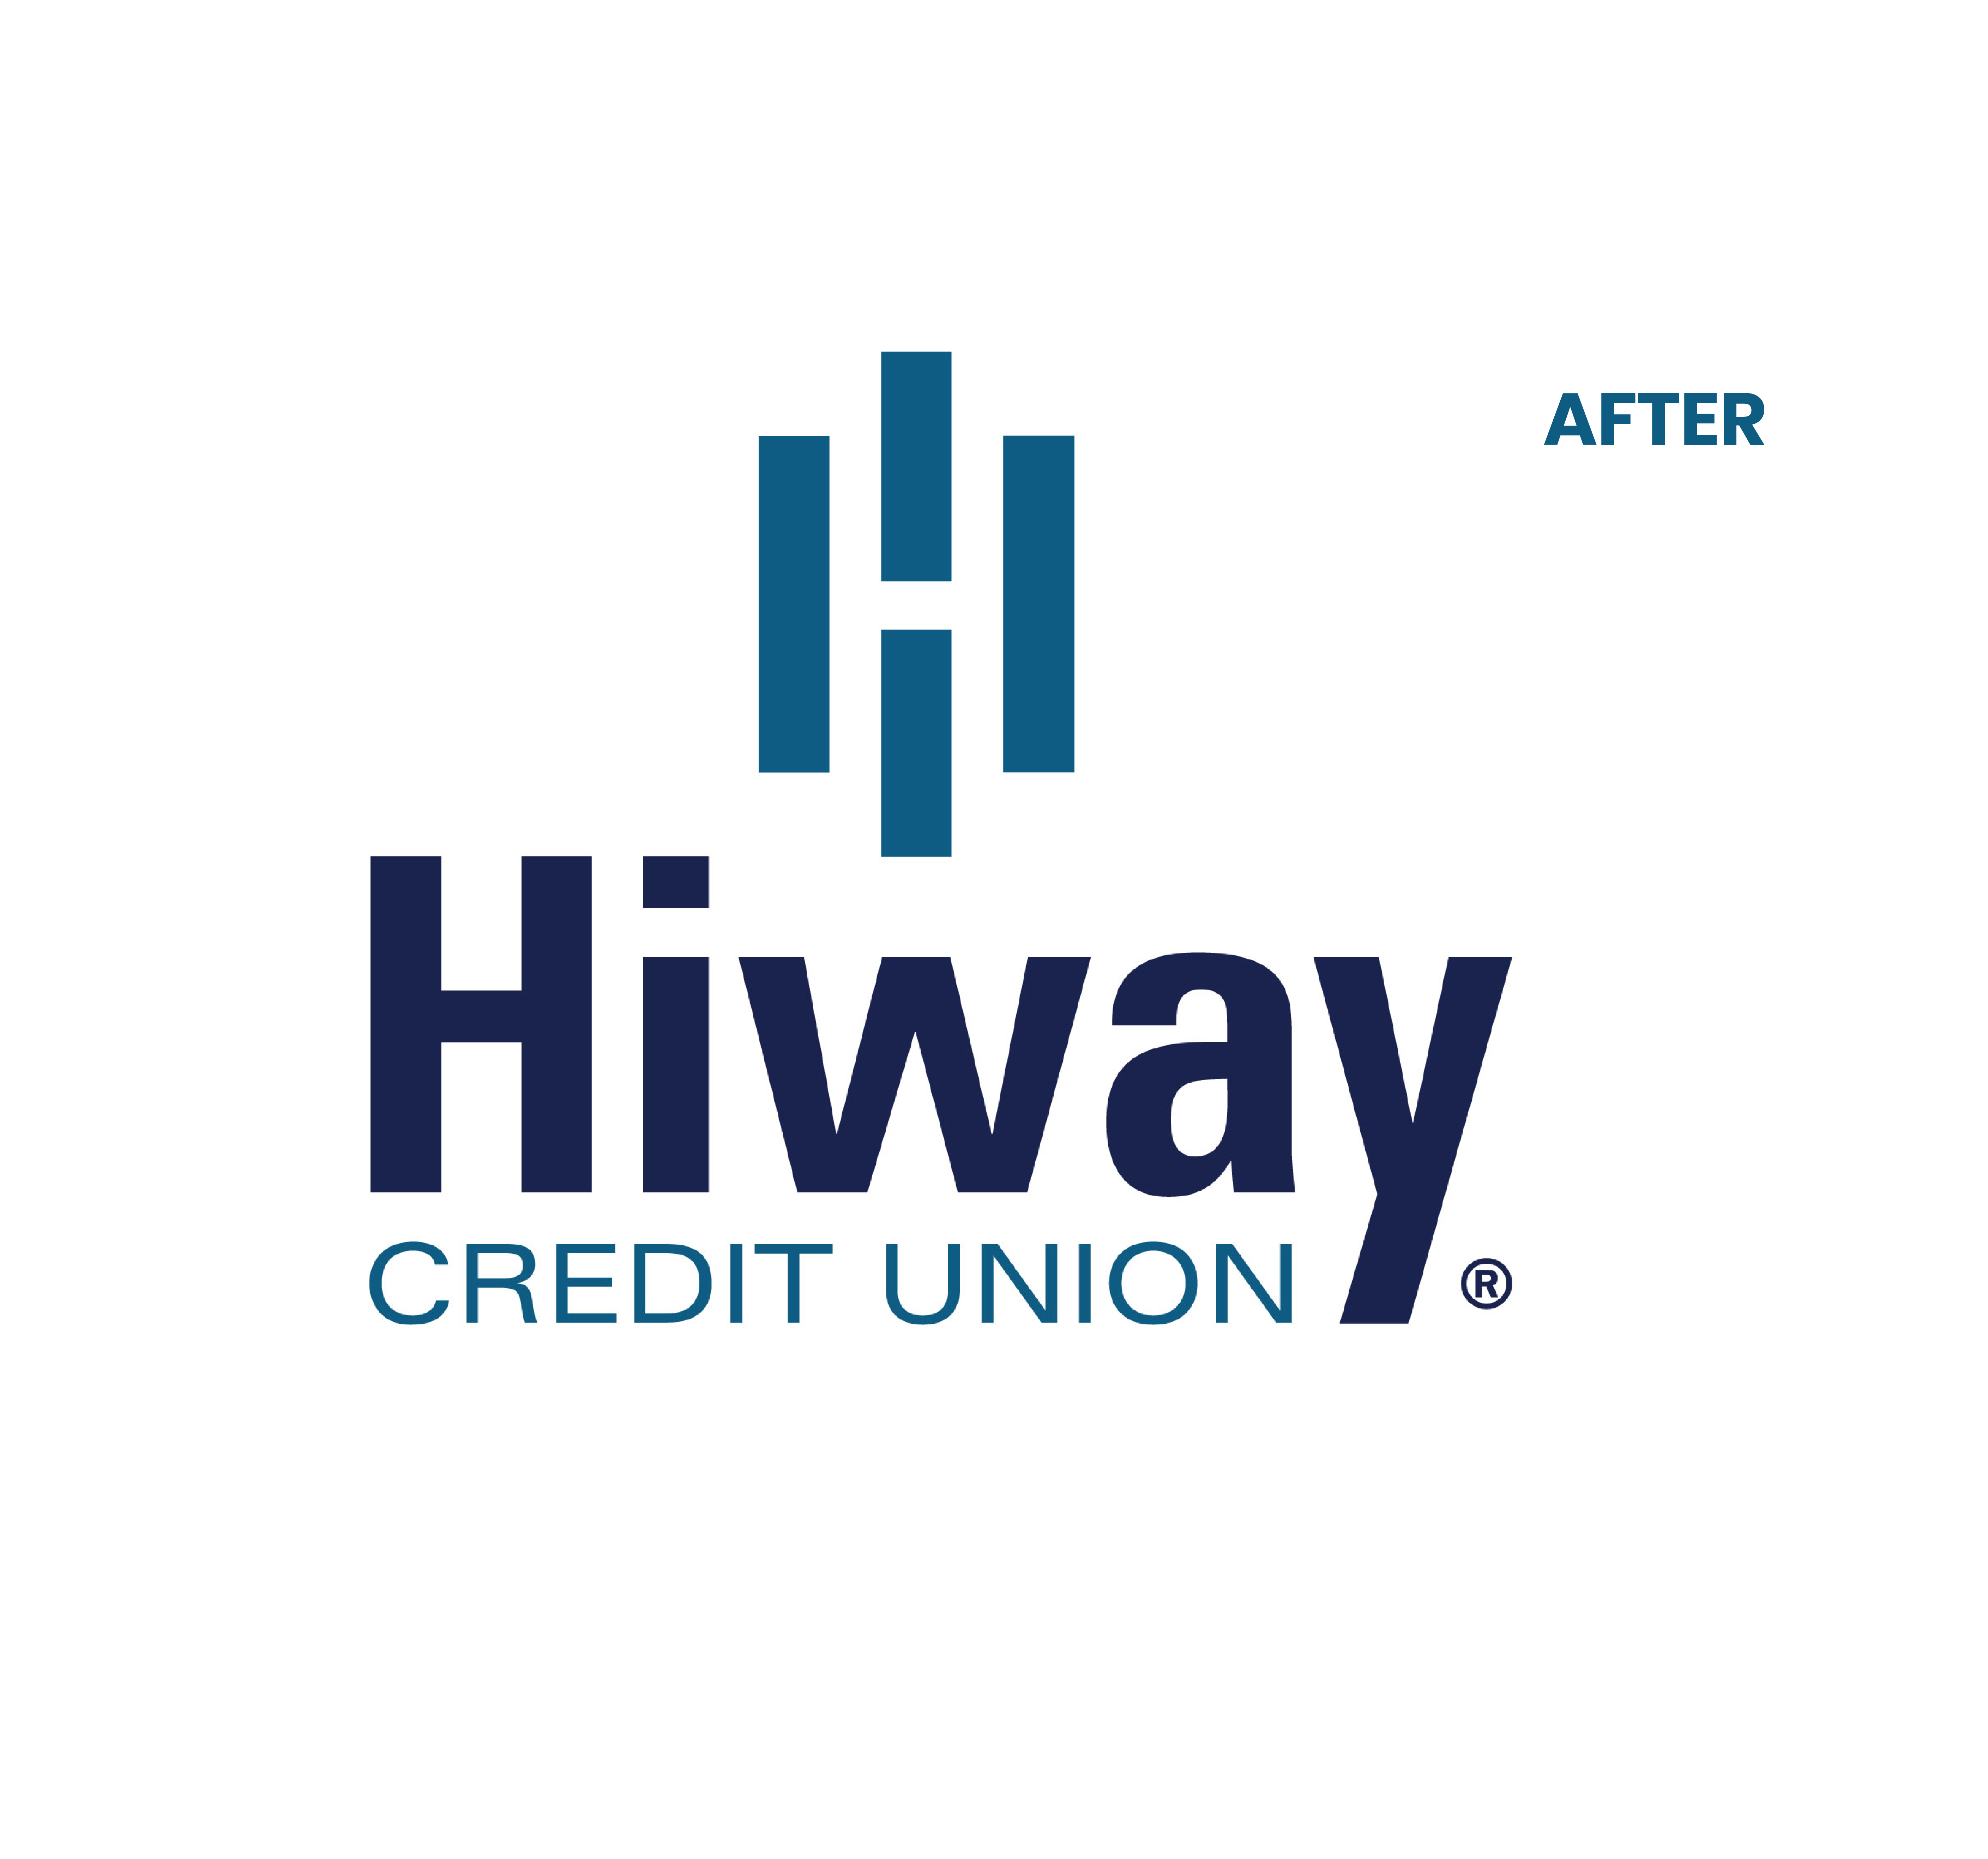 hiway logo before and after